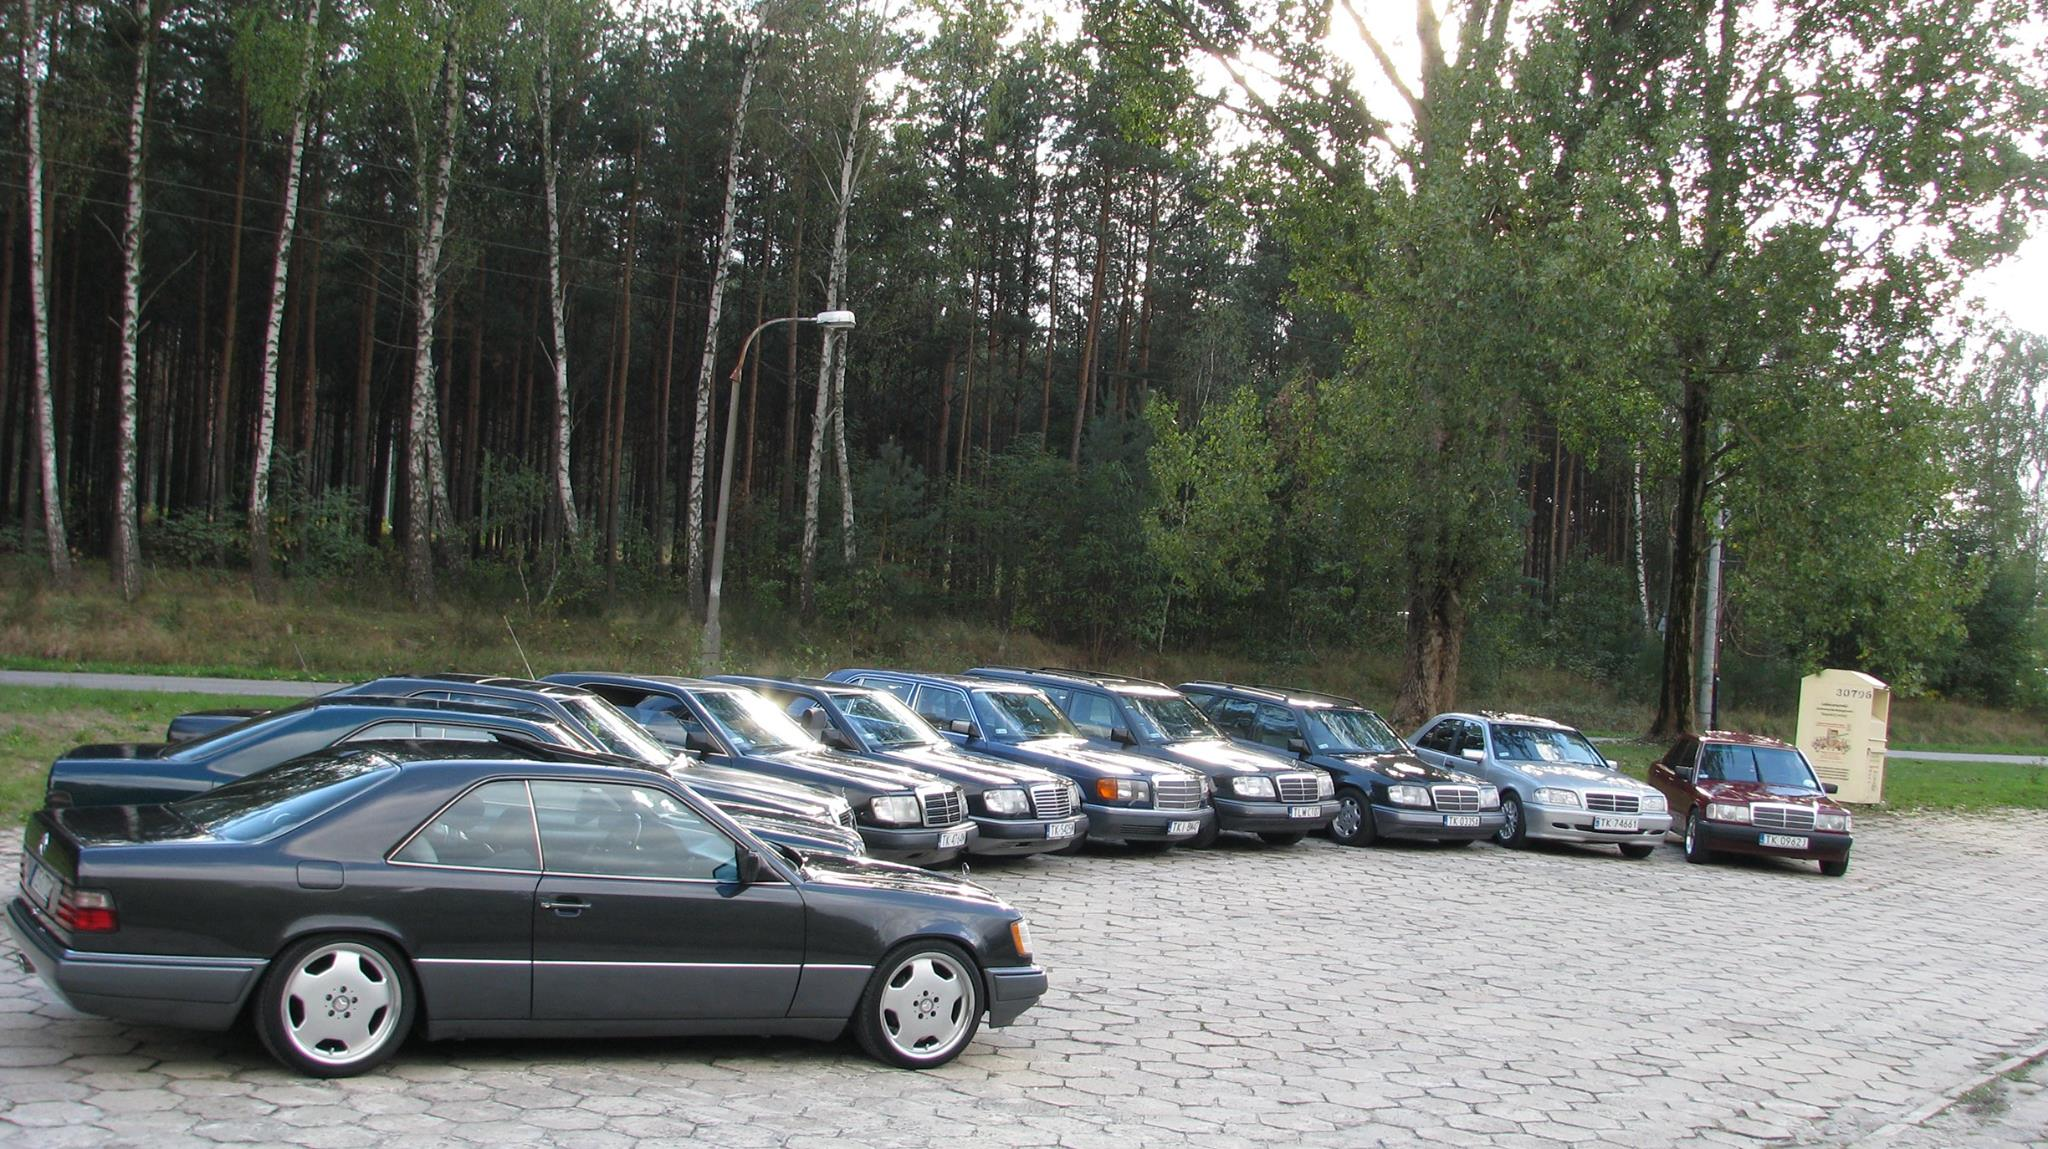 http://124coupe.pl/hosting/images/11ywy.jpg